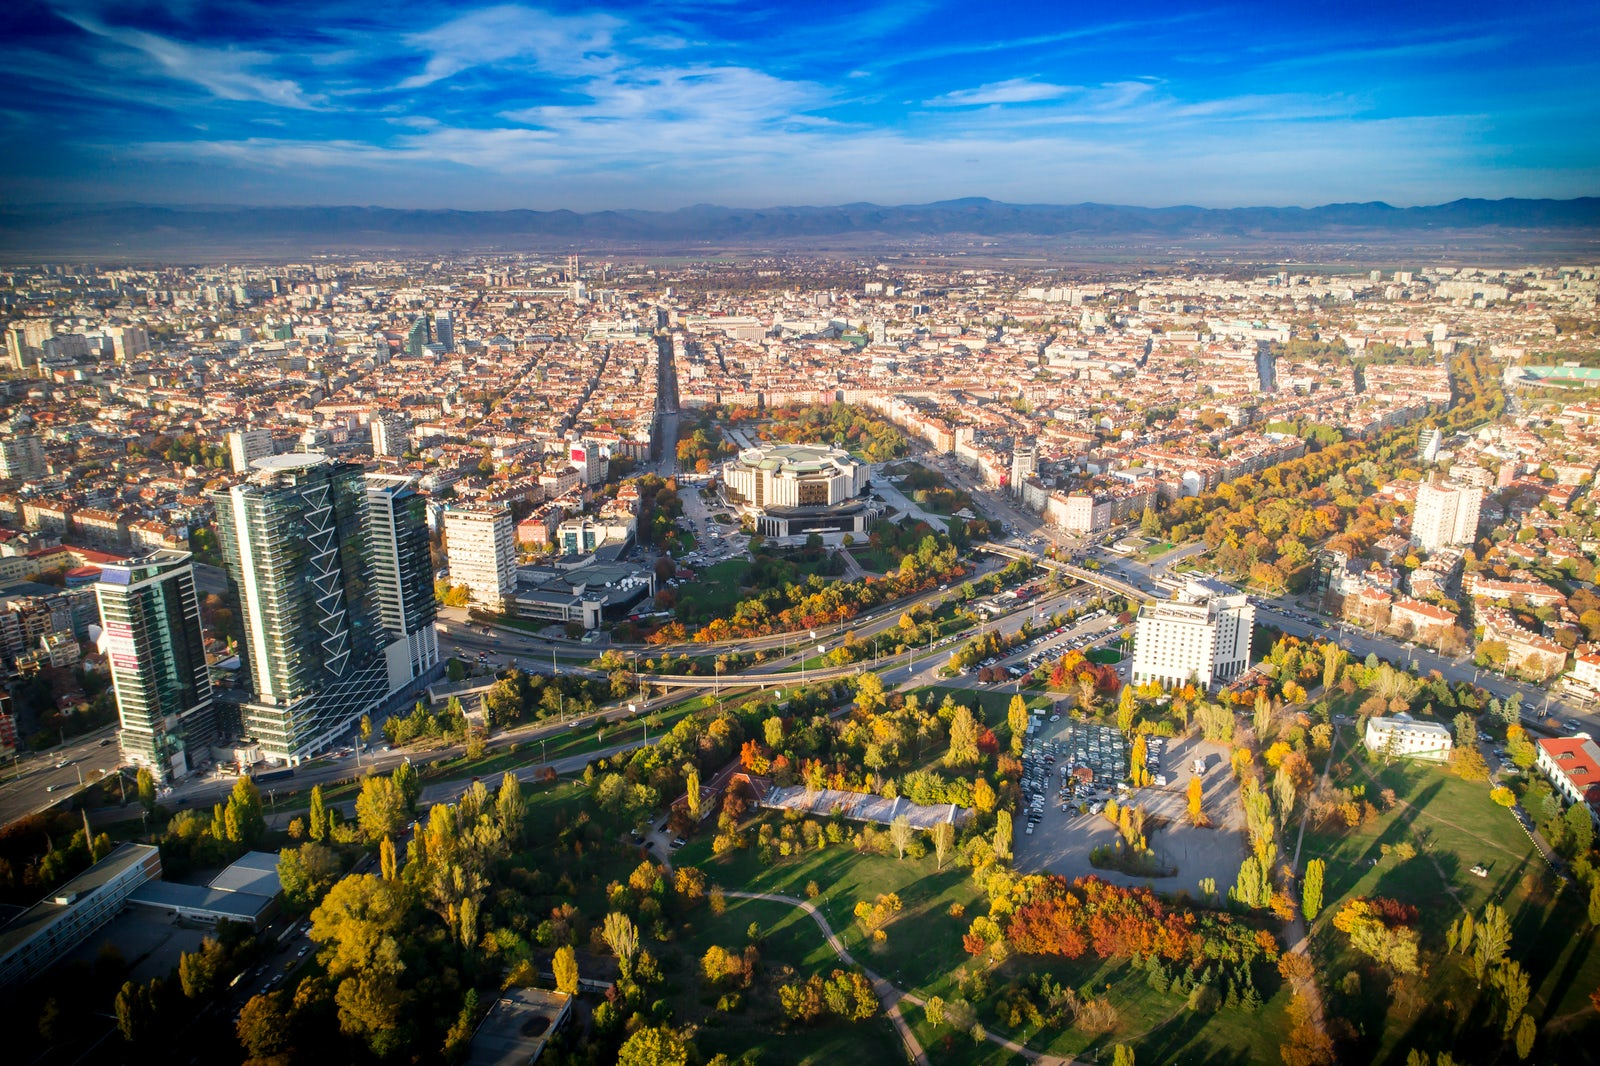 !i18n:es:data.cities:sofia.picture.caption